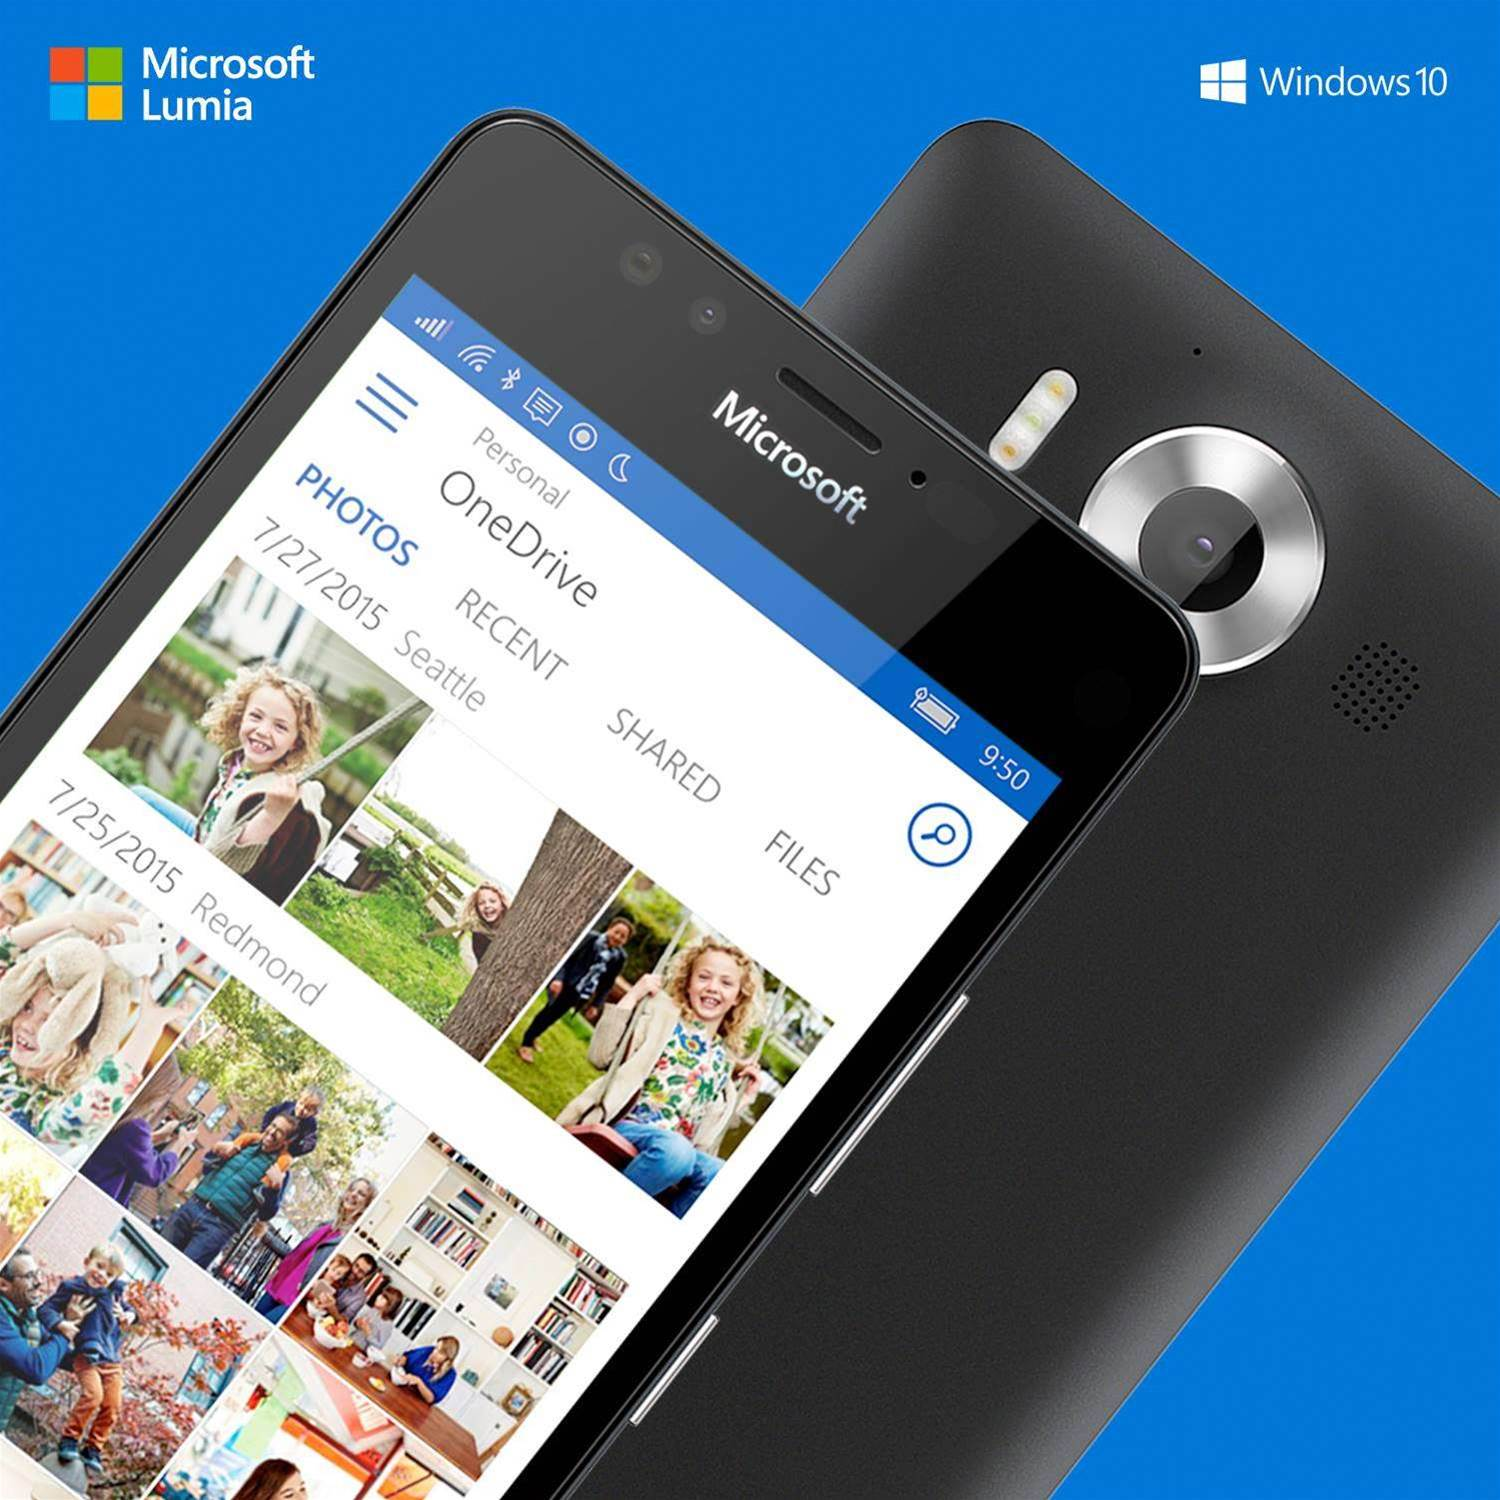 Buggy Win10 Mobile preview build requires downgrade